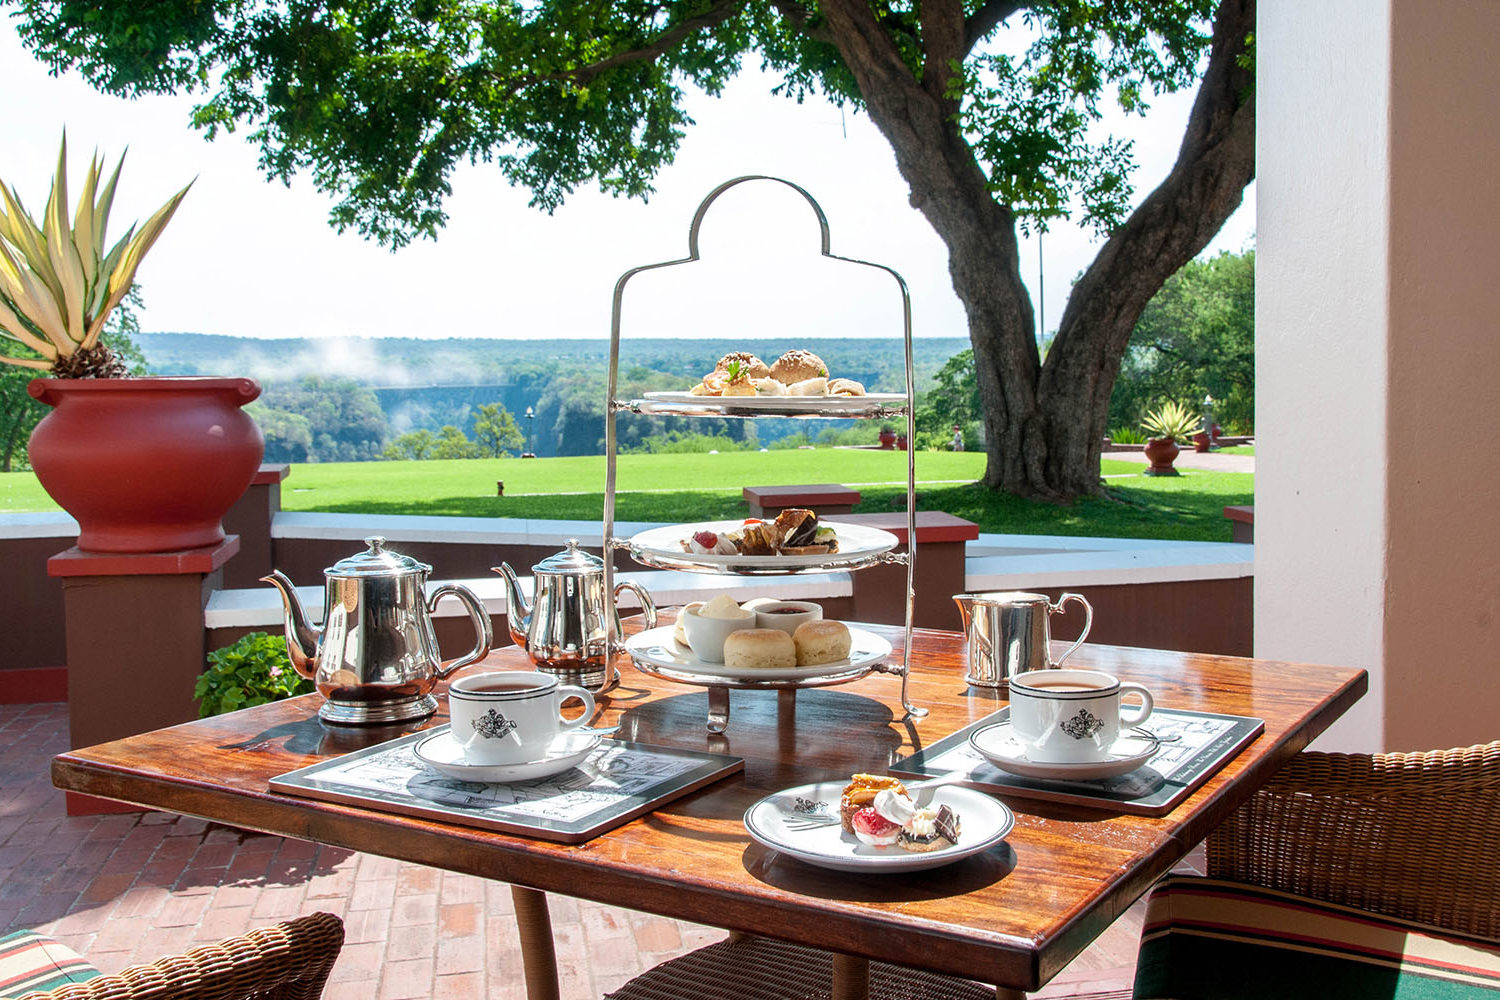 victoria falls hotel zimbabwe-accommodation-elegant-luxury-hotel-zambia-in-style-restaurants-afternoon-tea